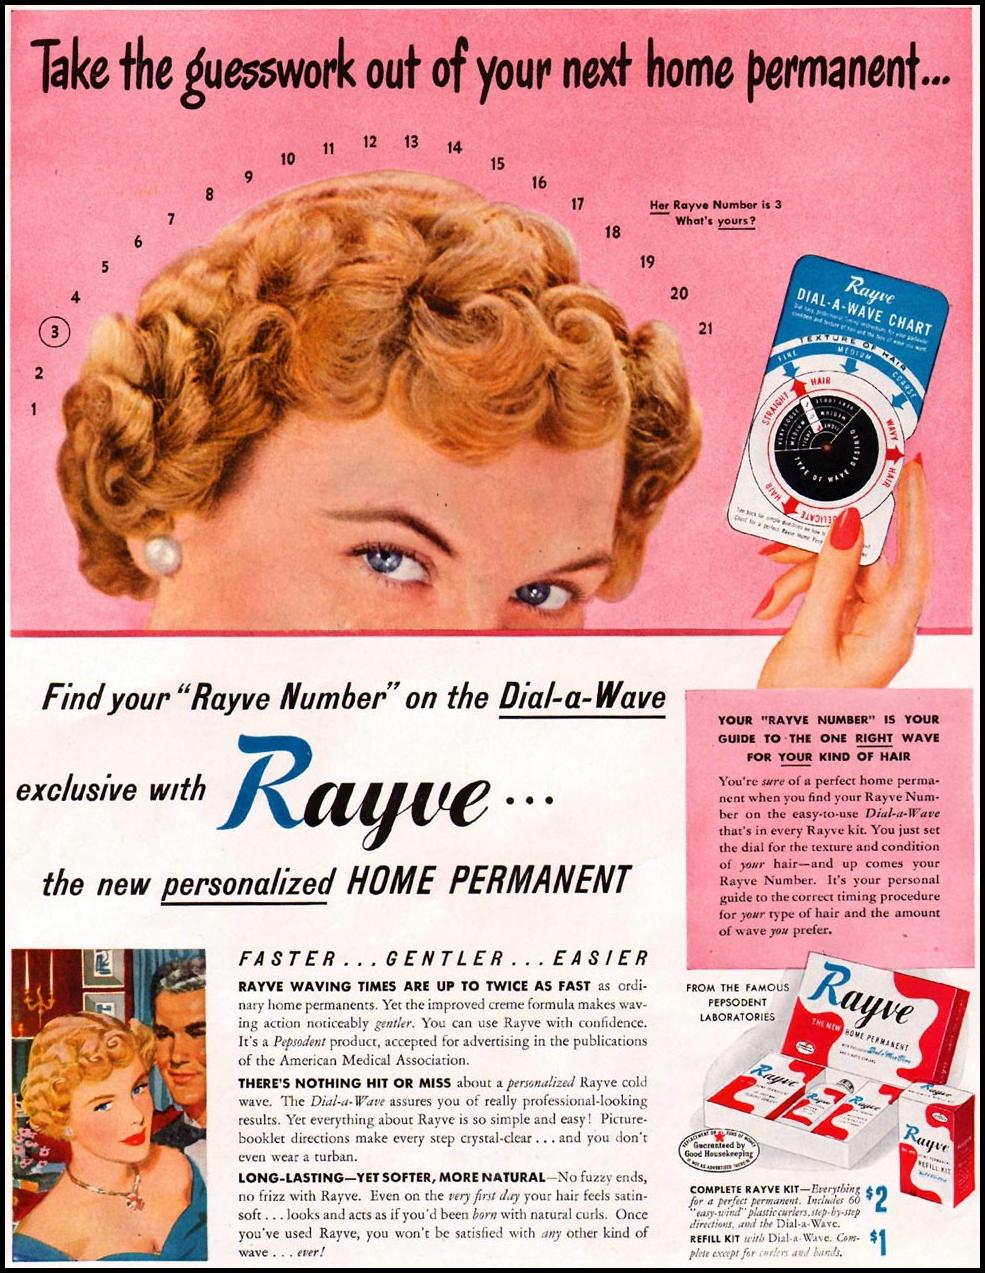 RAYVE HOME PERMANENT LADIES' HOME JOURNAL 07/01/1949 p. 27